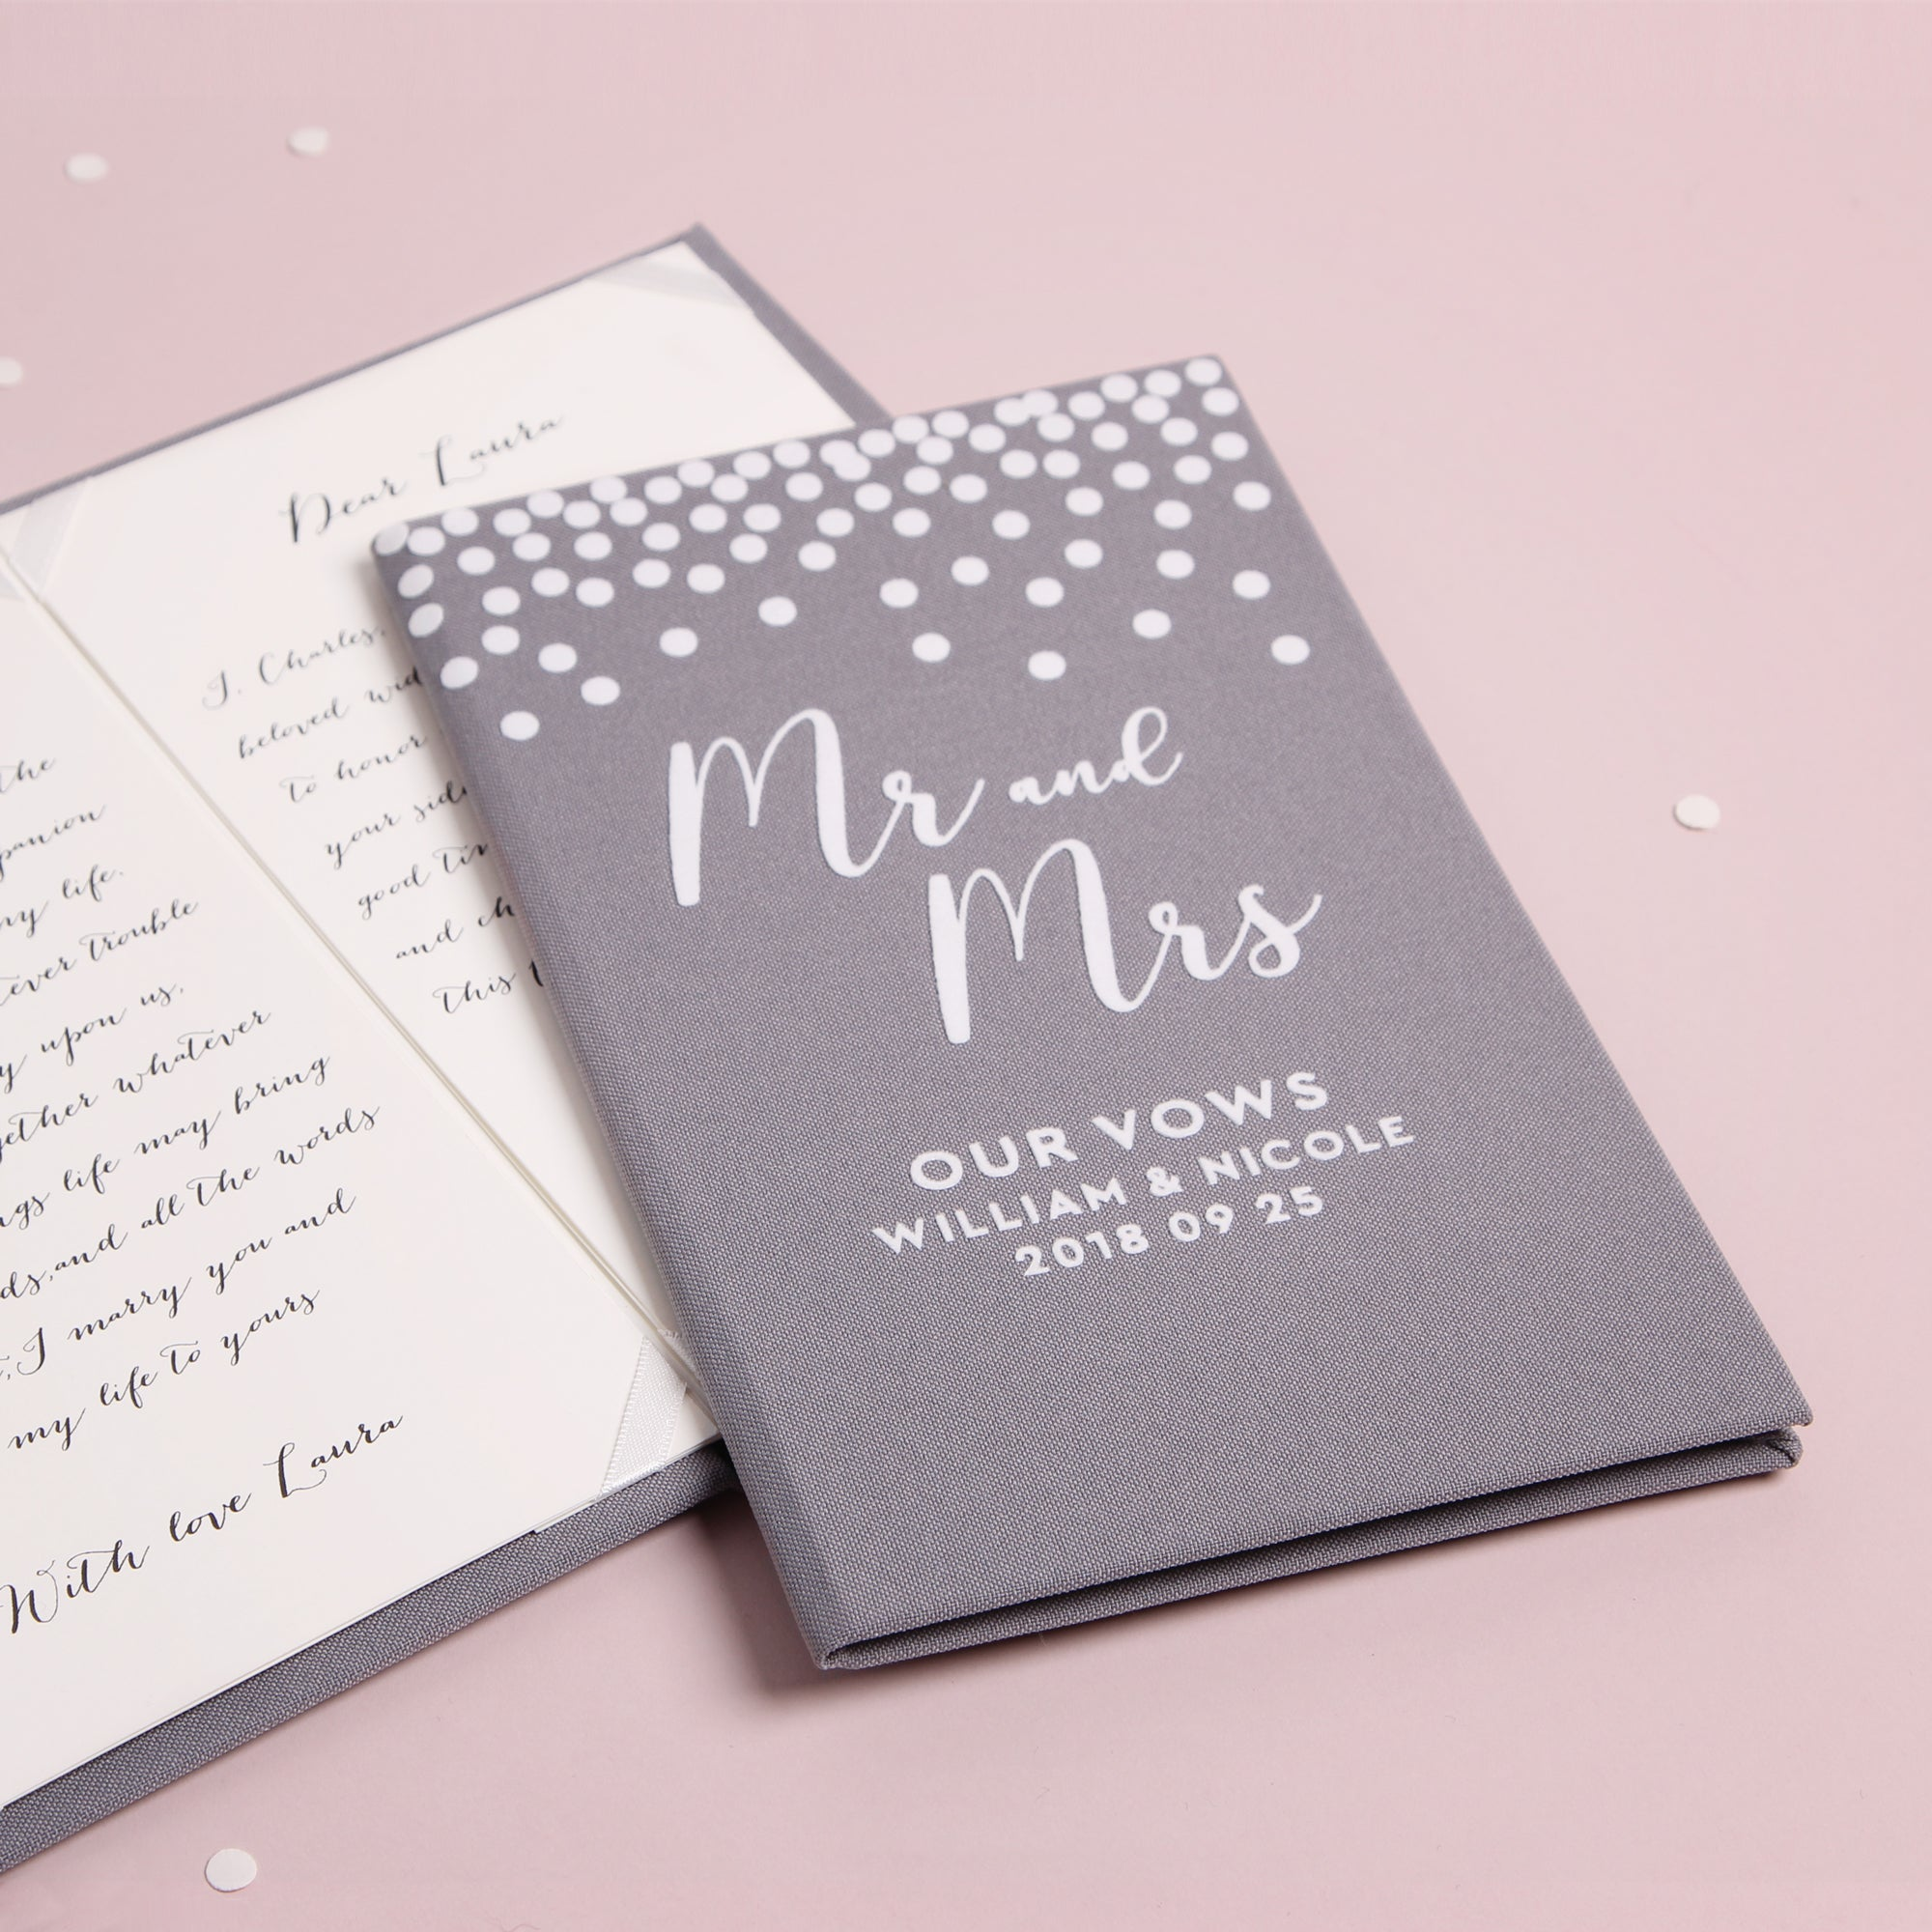 Personalized Wedding Vow Books White Velour Gray Dots Vows Bride and Groom Ceremony - Liumy